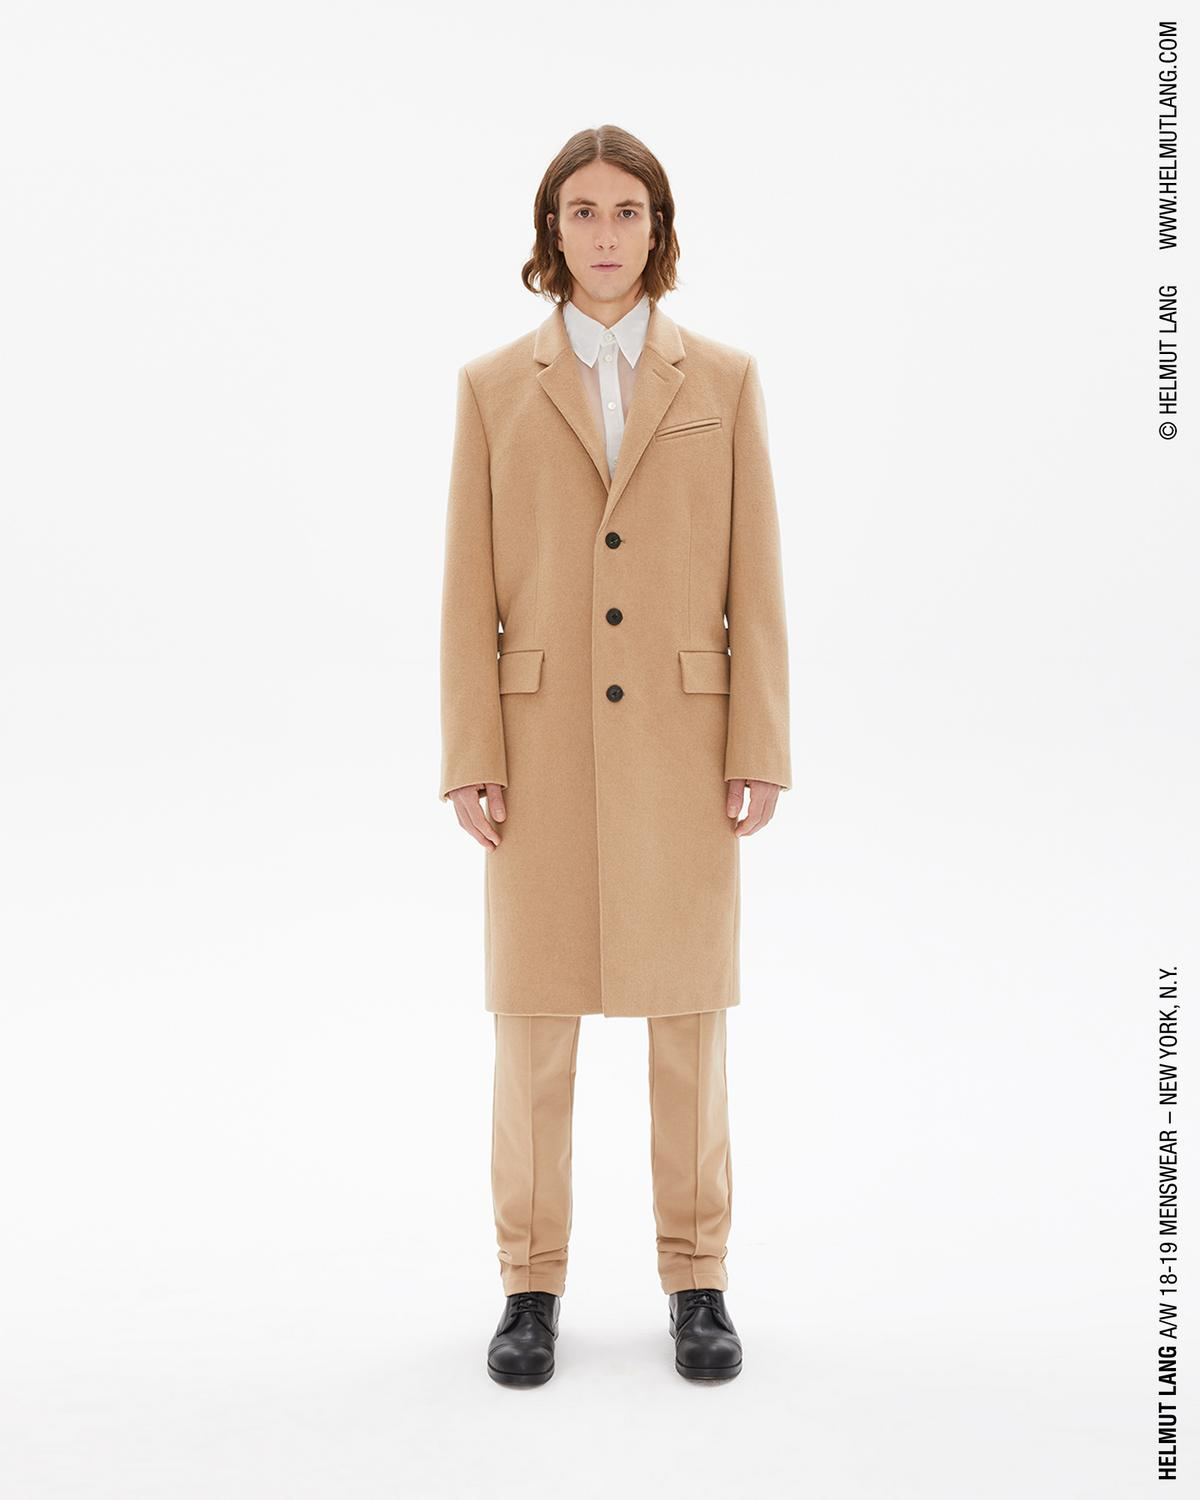 3 BUTTON SINGLE BREASTED WOOL COAT